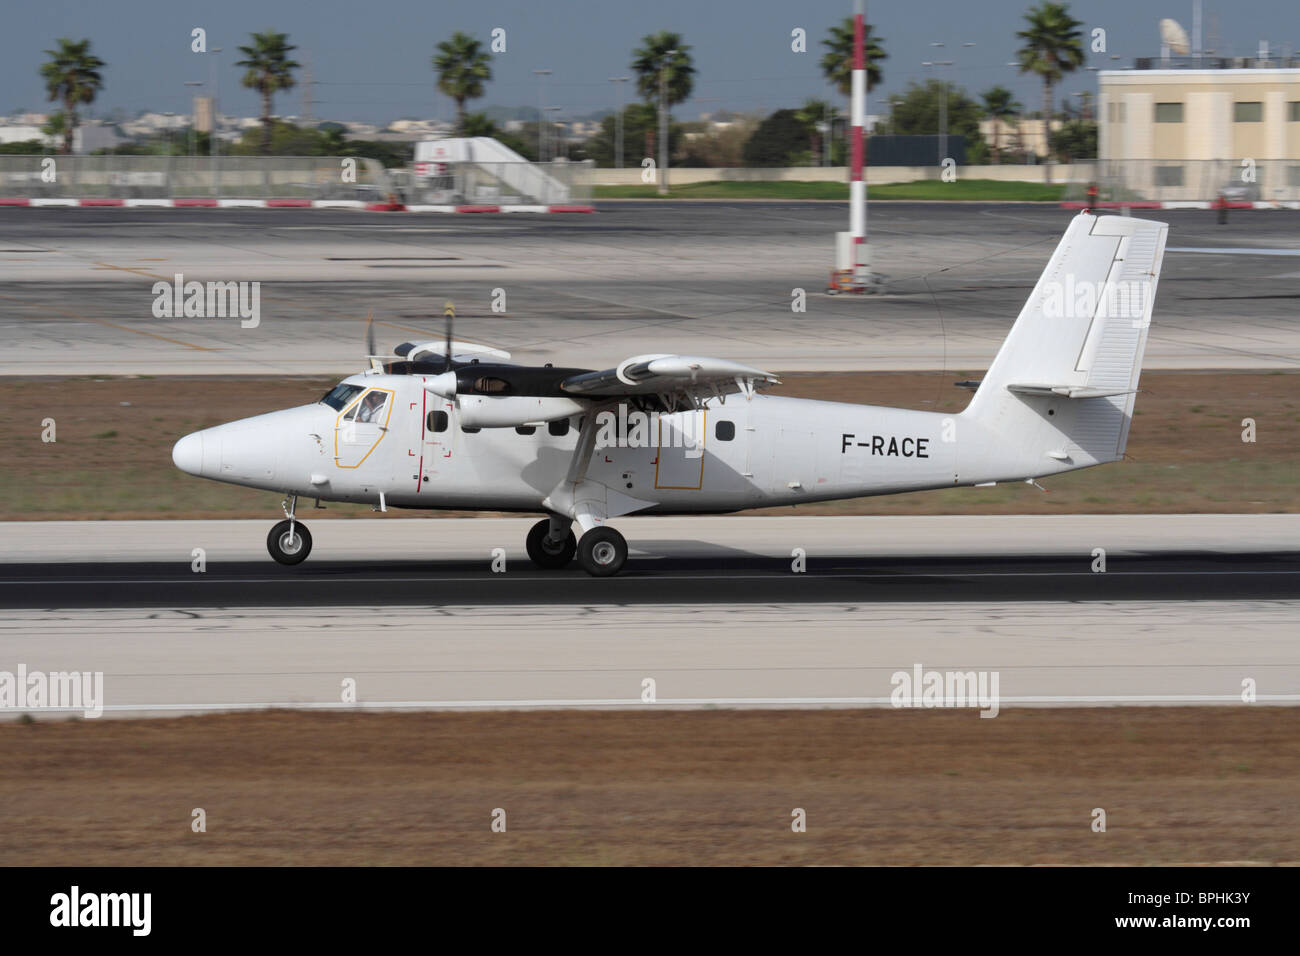 de Havilland Canada DHC-6 Twin Otter turboprop utility aircraft on the runway in Malta - Stock Image